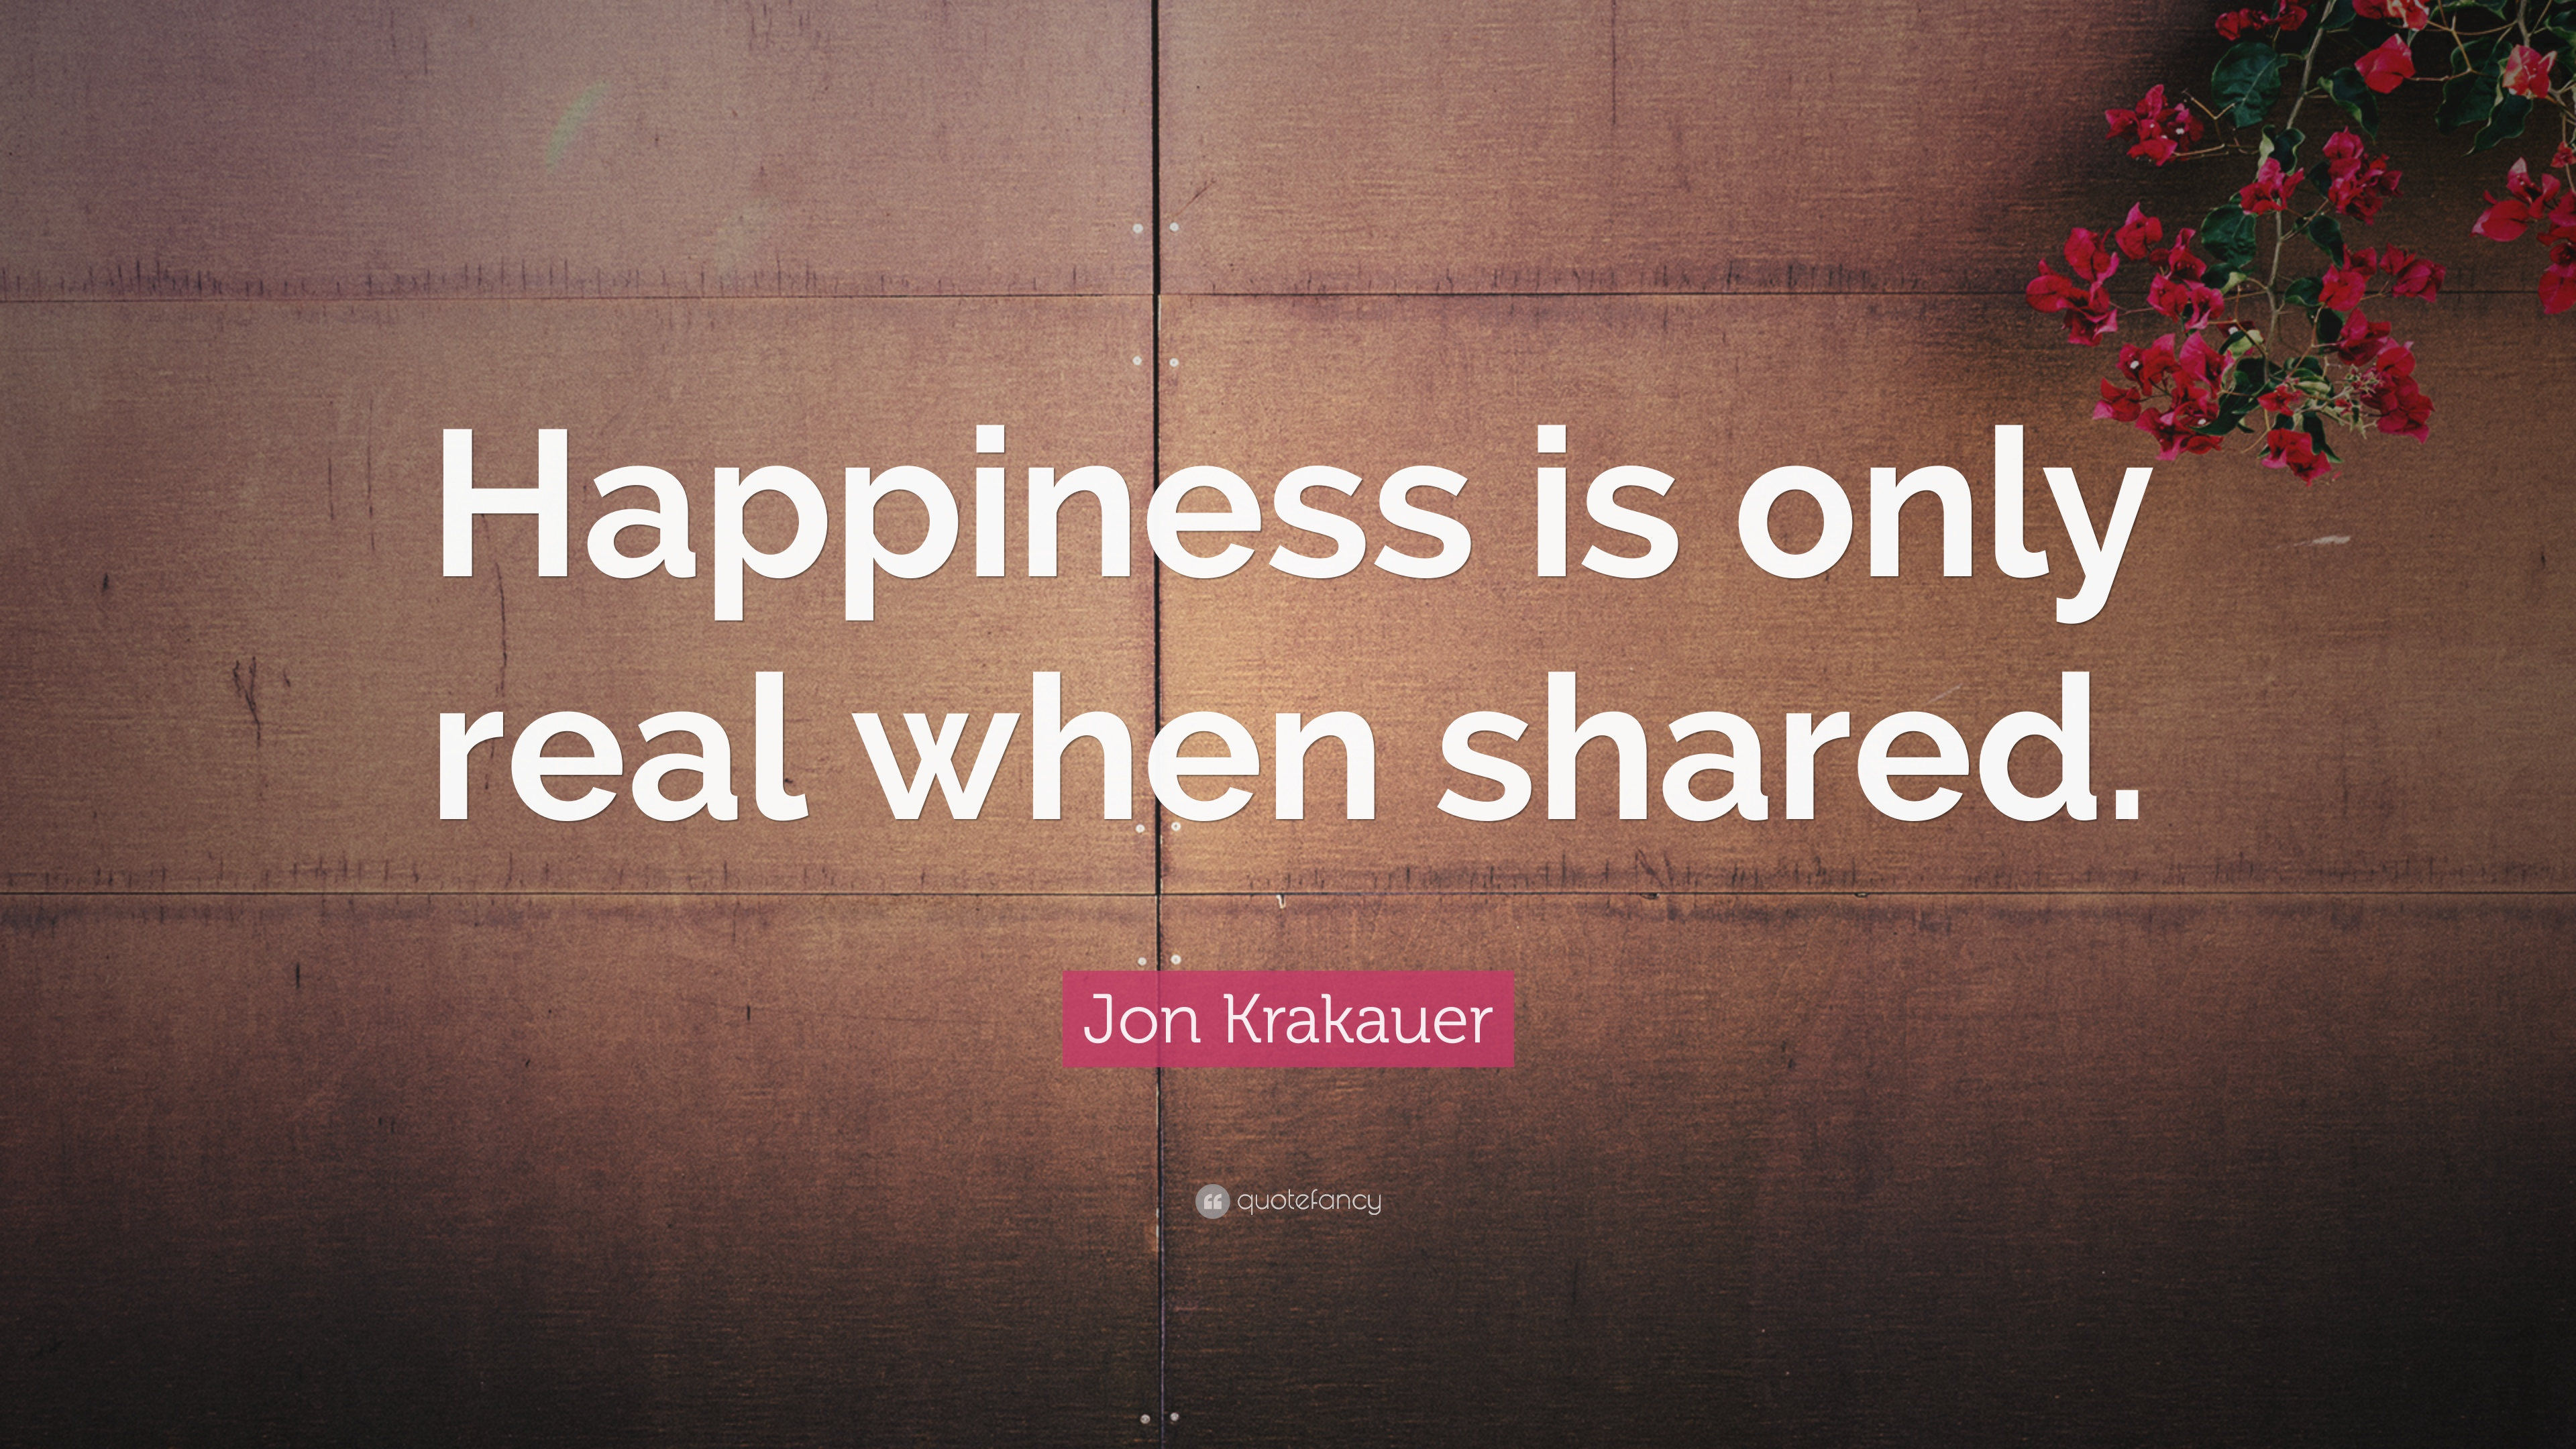 happiness is only real when shared essay We would like to show you a description here but the site won't allow us.